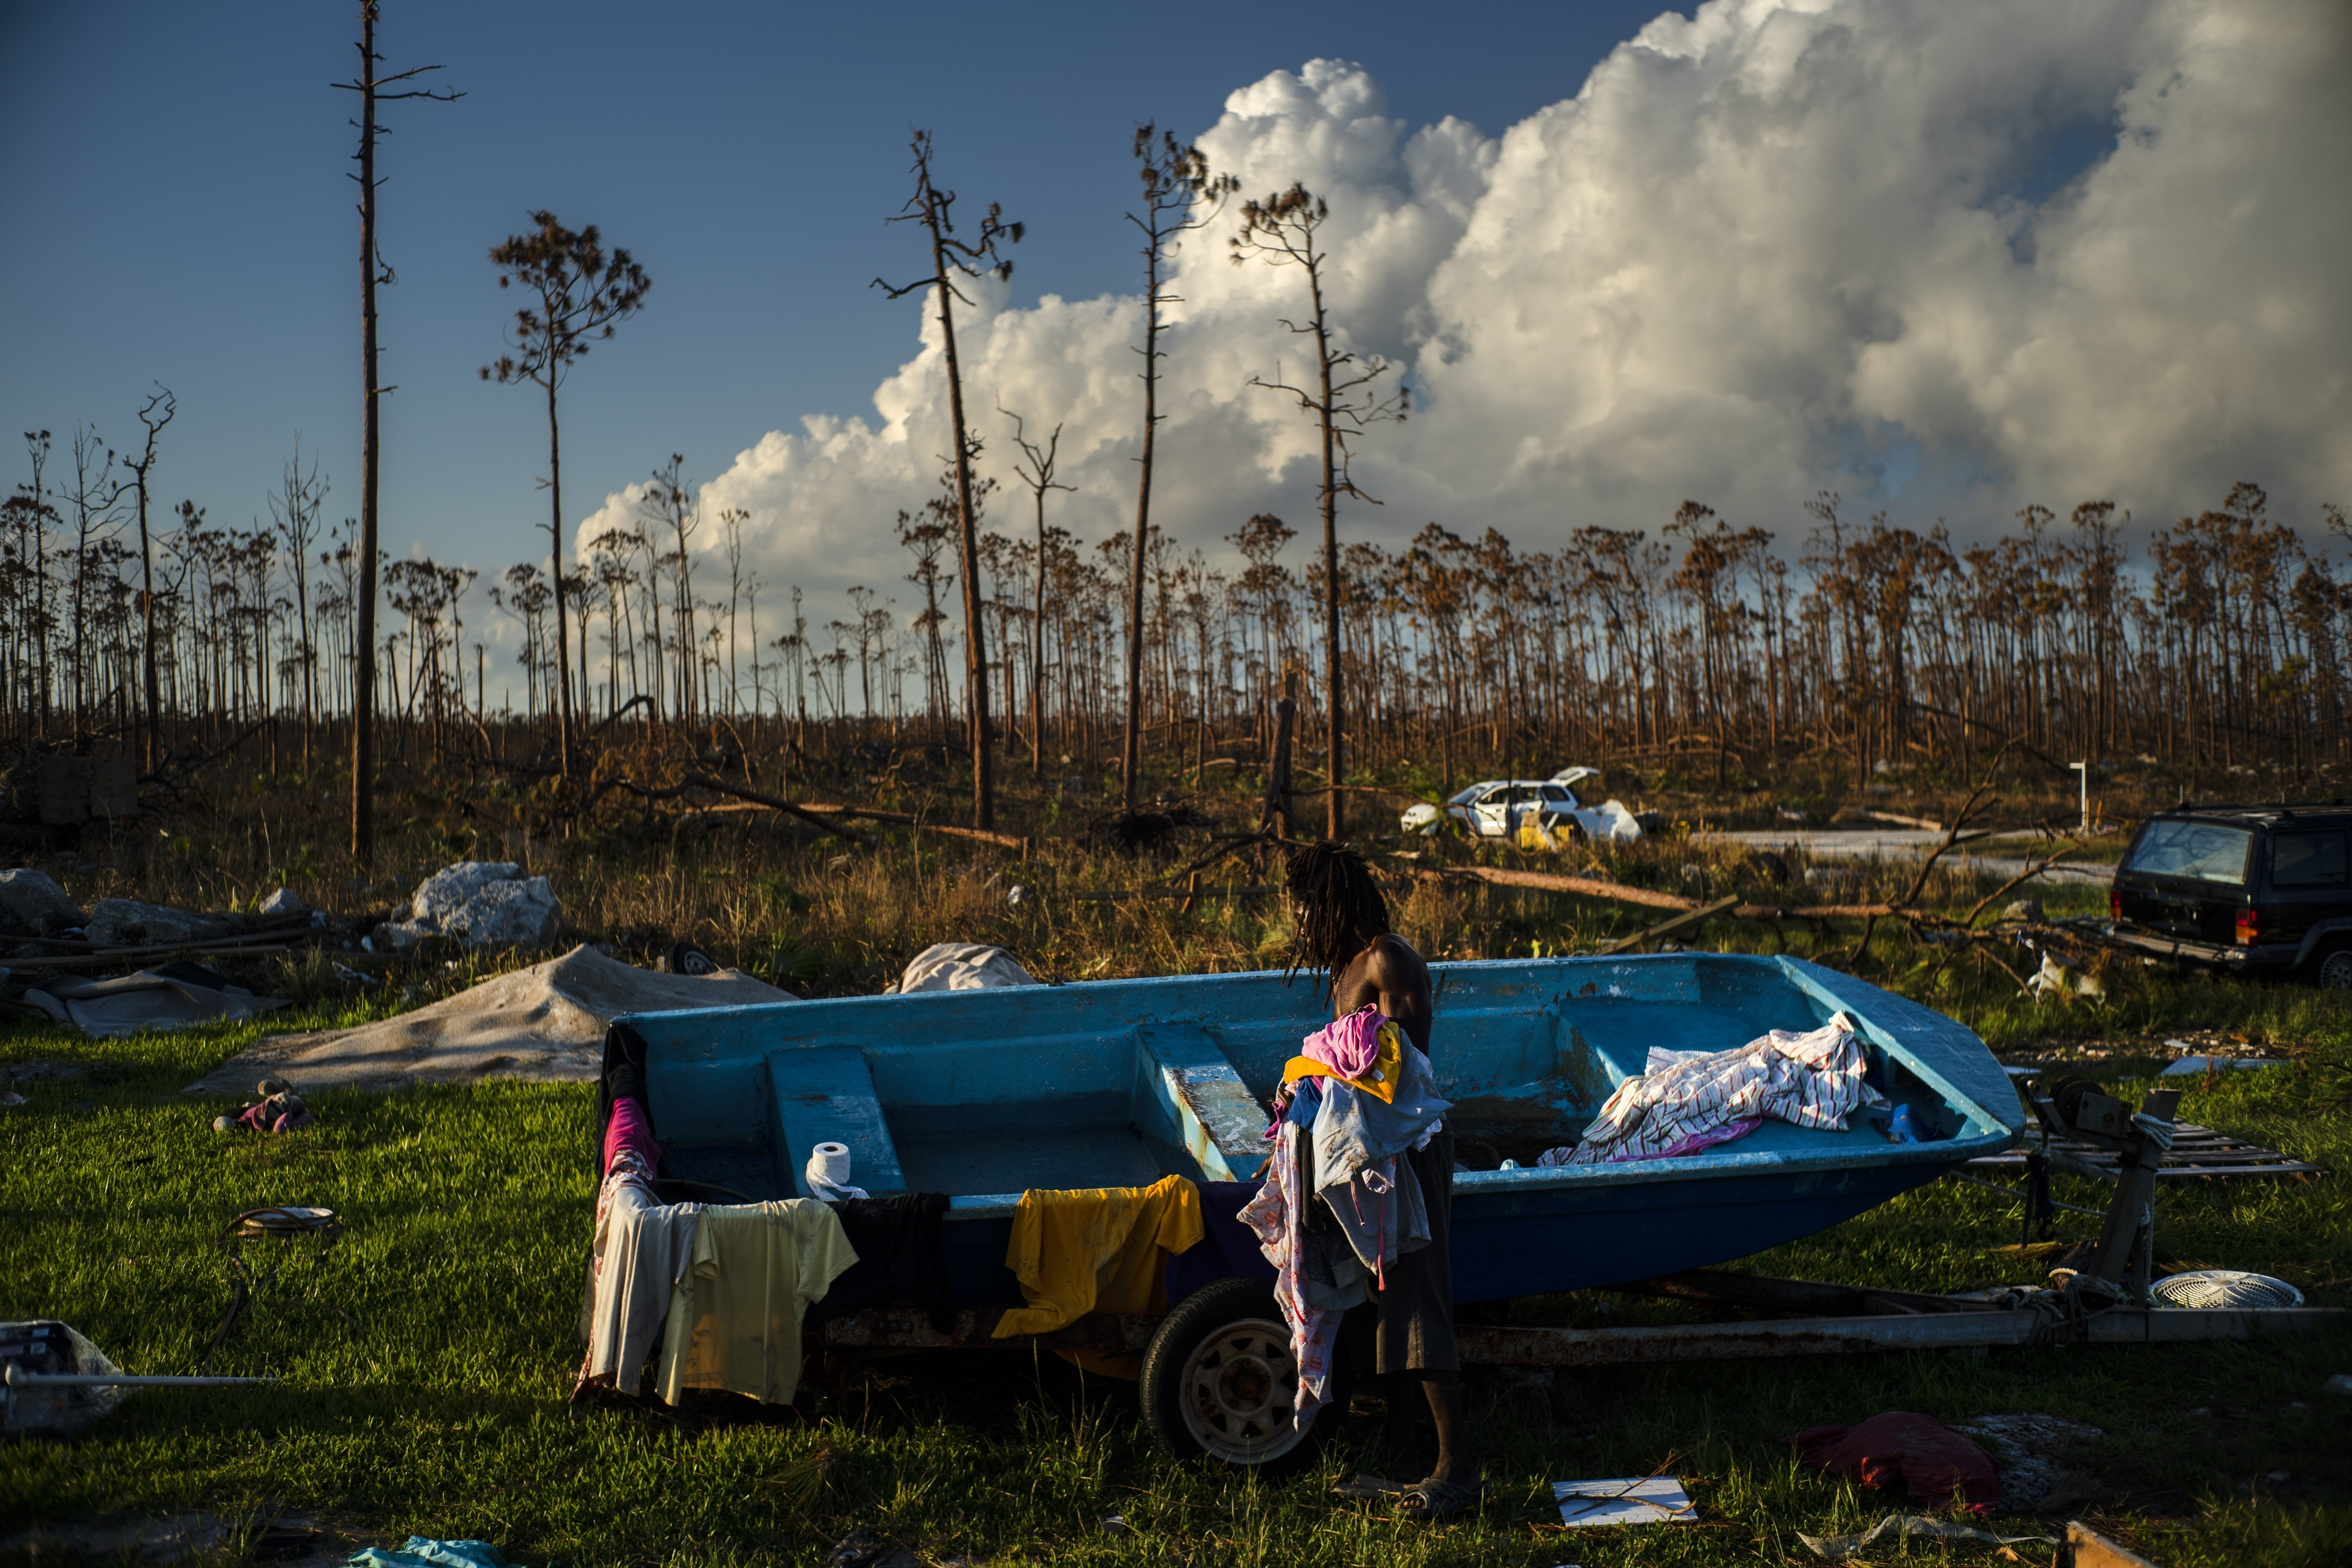 Experts say adapting to climate change can pay off manifold